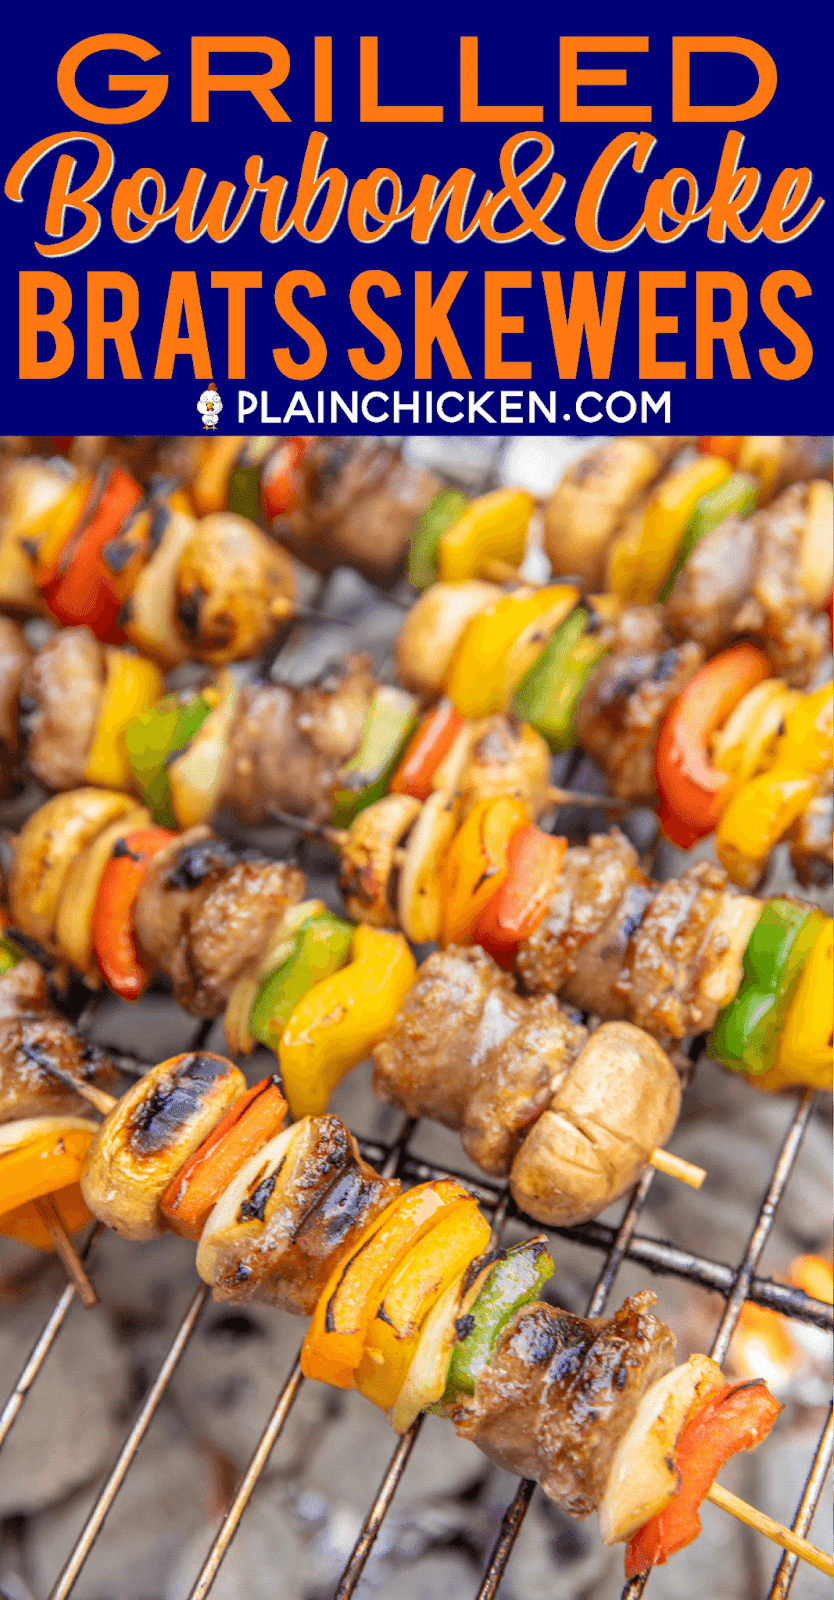 Grilled Bourbon & Coke Brats Skewers - SO good! Perfect party food!! Brats, onions, bell peppers and mushrooms marinated in bourbon, coke, soy sauce, brown sugar, seasoned salt and a little cayenne. Can assemble ahead of time and throw on the grill when you are ready to eat. These were a HUGE hit at our last tailgate. NO leftovers! A must for your next tailgate #tailgating #brats #grilling #partyfood